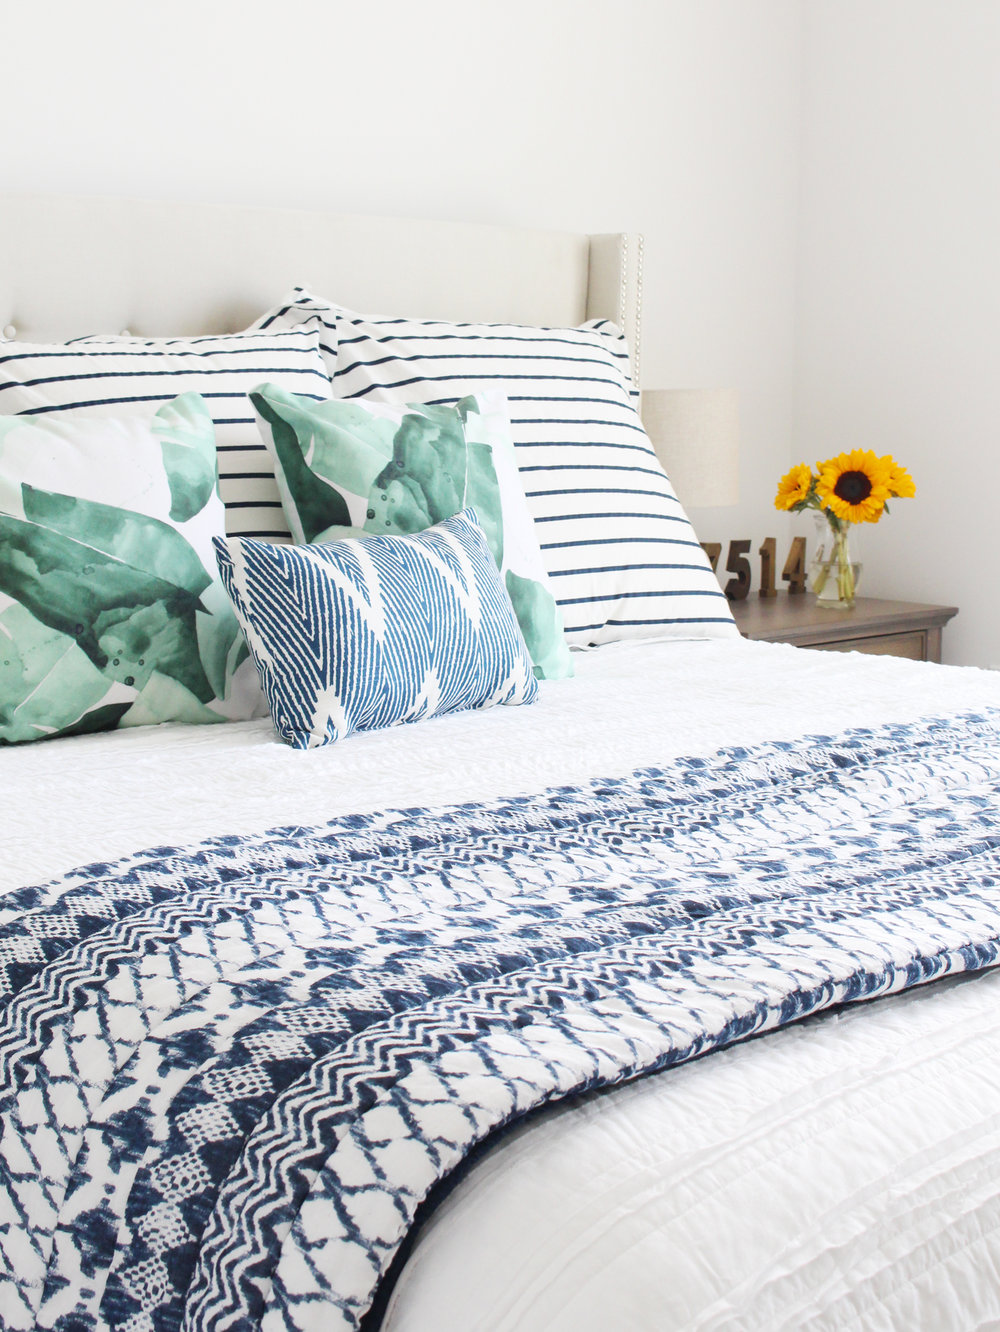 Inspiration for Mix & Match Design Company's guest bedroom makeover for the One Room Challenge. Loving the modern farmhouse bedroom with its blue and green bedding.